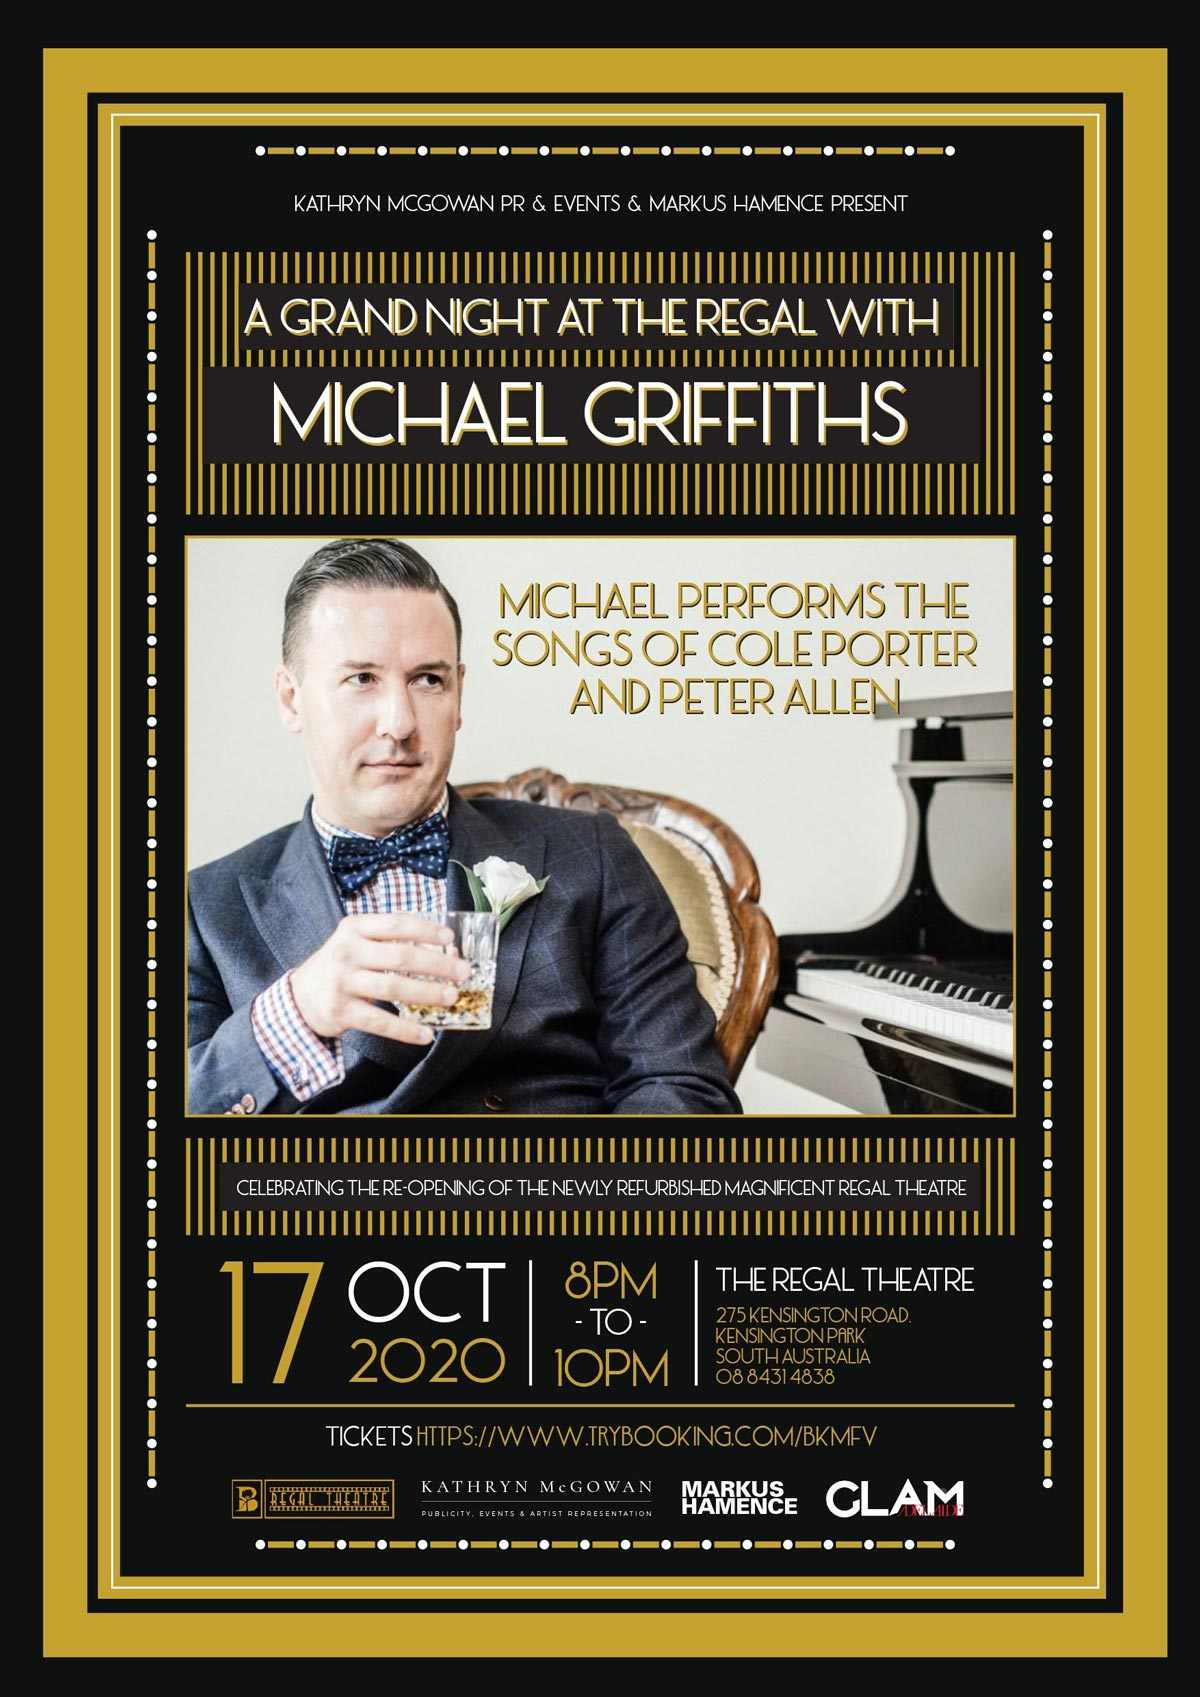 A Grand Night at The Regal with Michael Griffiths Poster